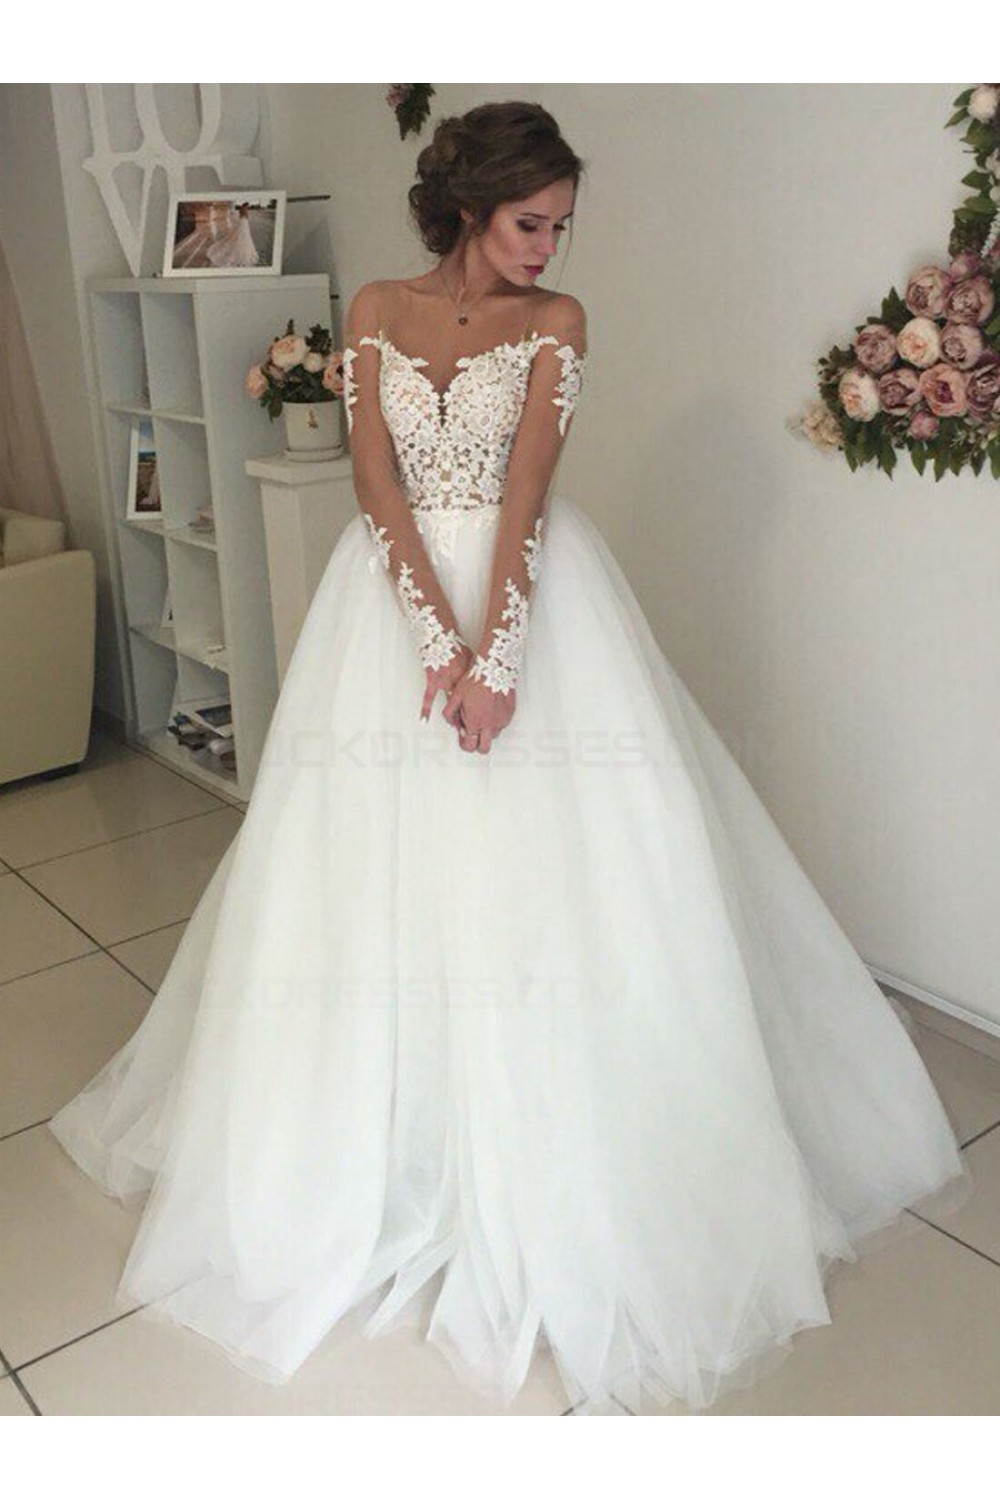 Long sleeves lace illusion neckline wedding dresses bridal gowns 3030300 junglespirit Choice Image